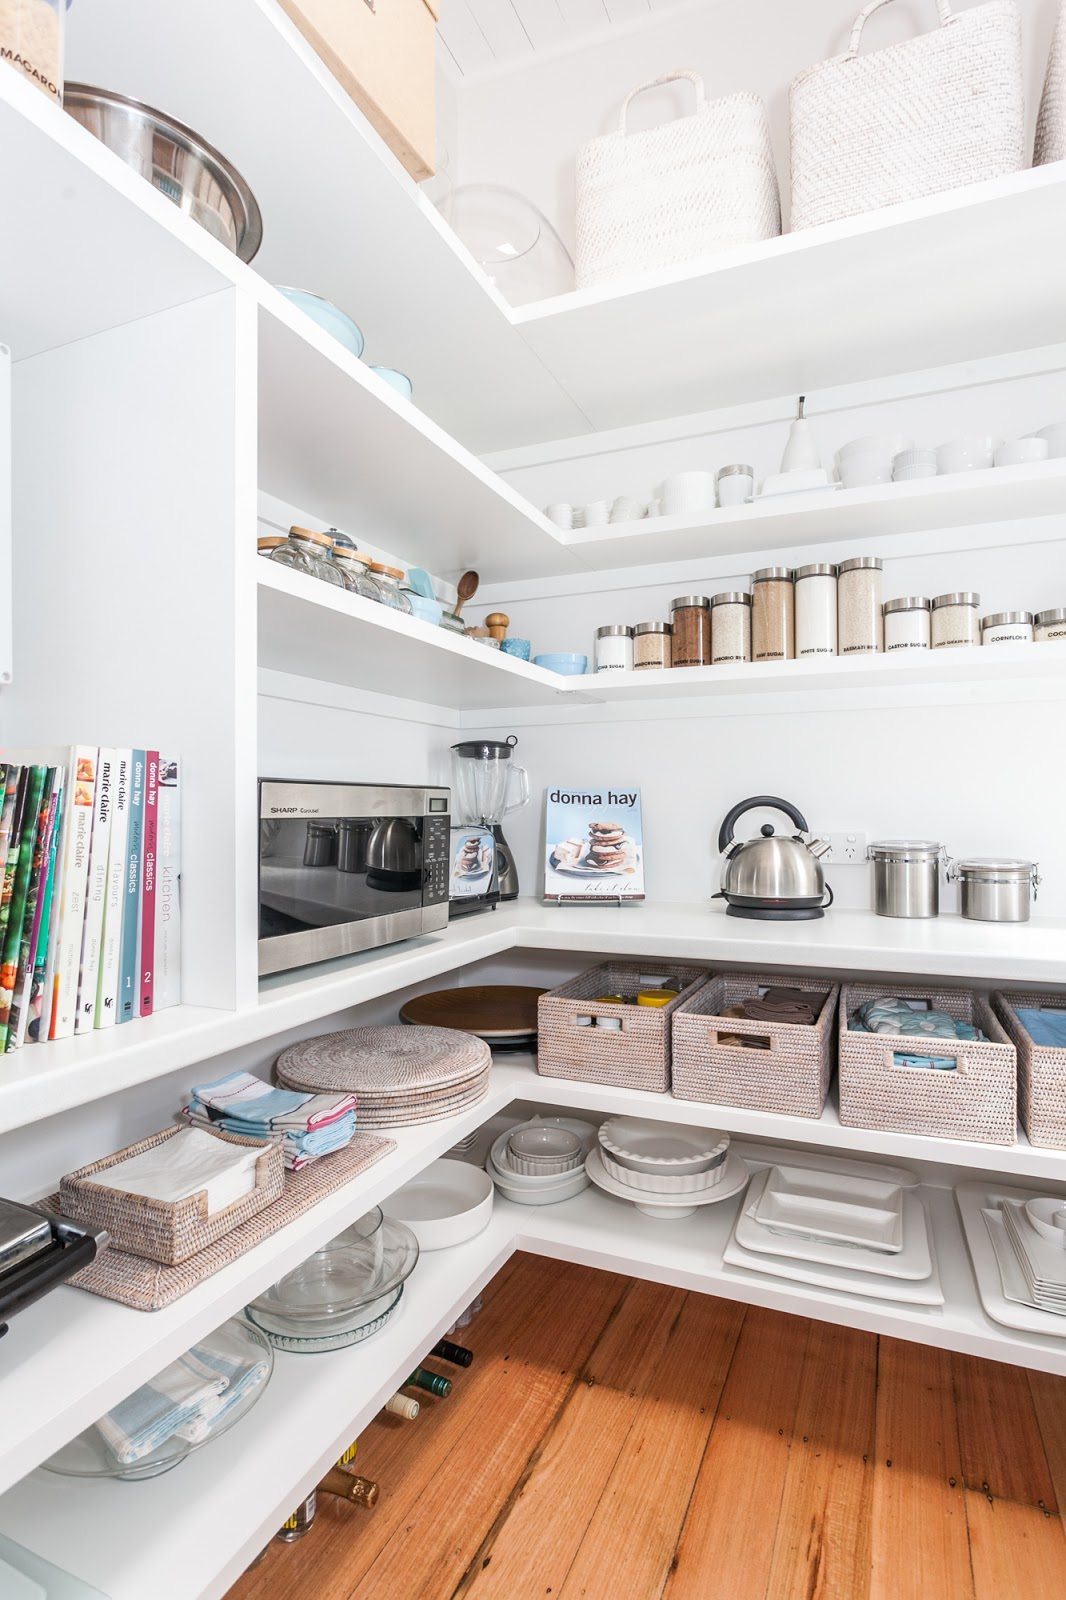 Inspiration for my Walk-In Pantry